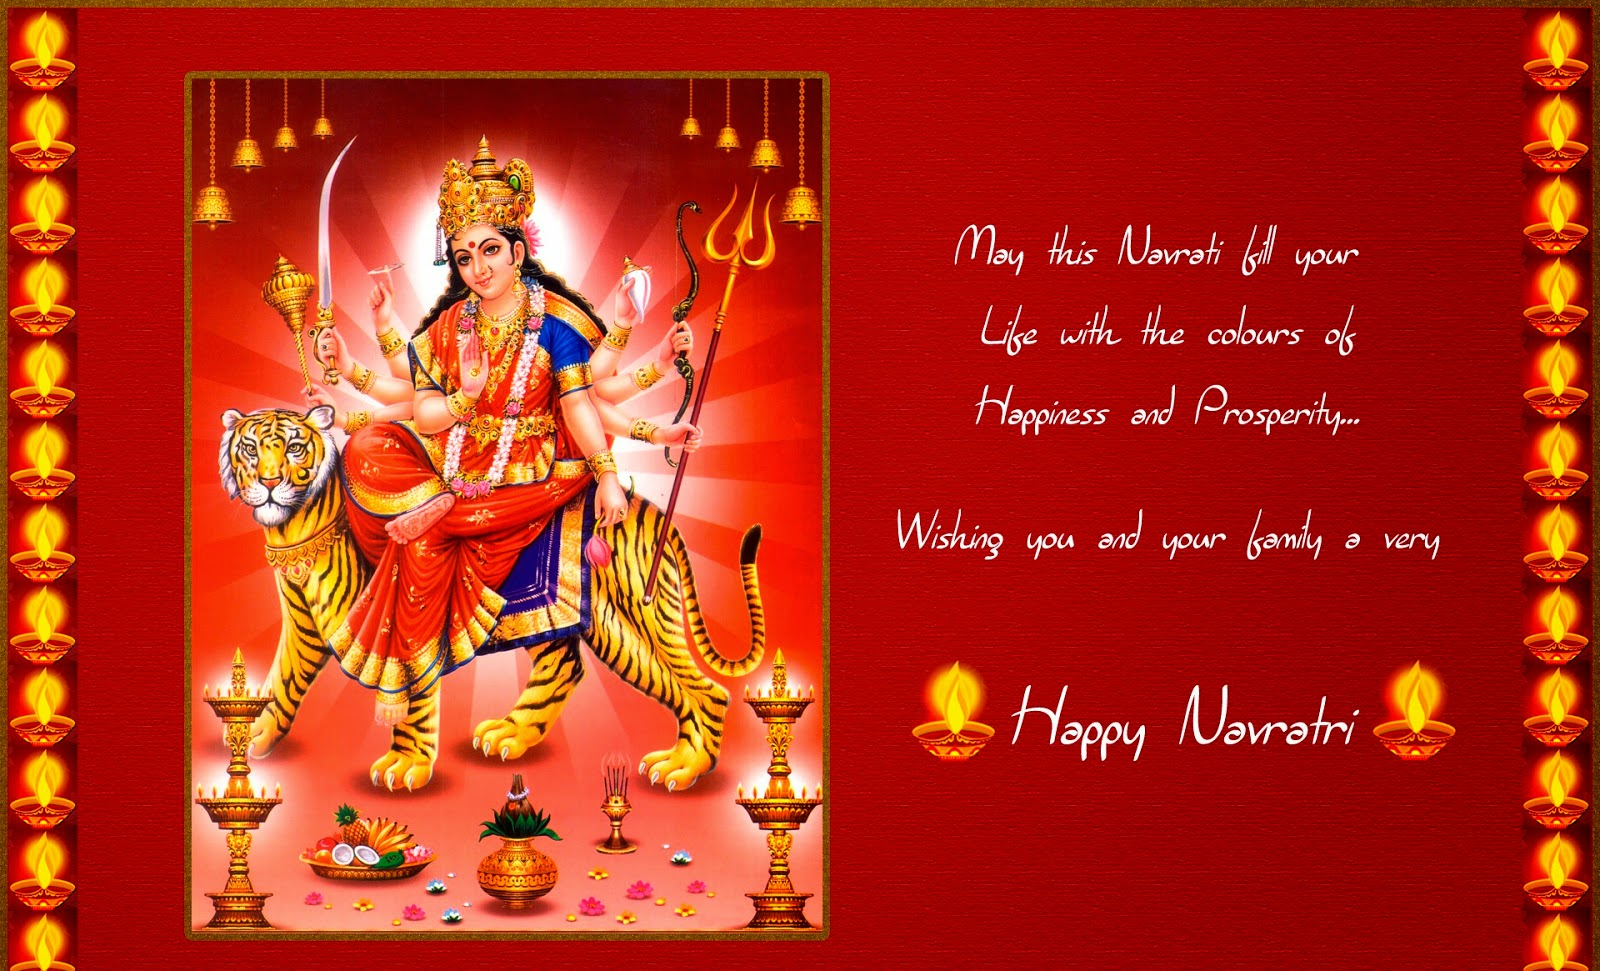 Durga maa wallpapers for navratra festival download